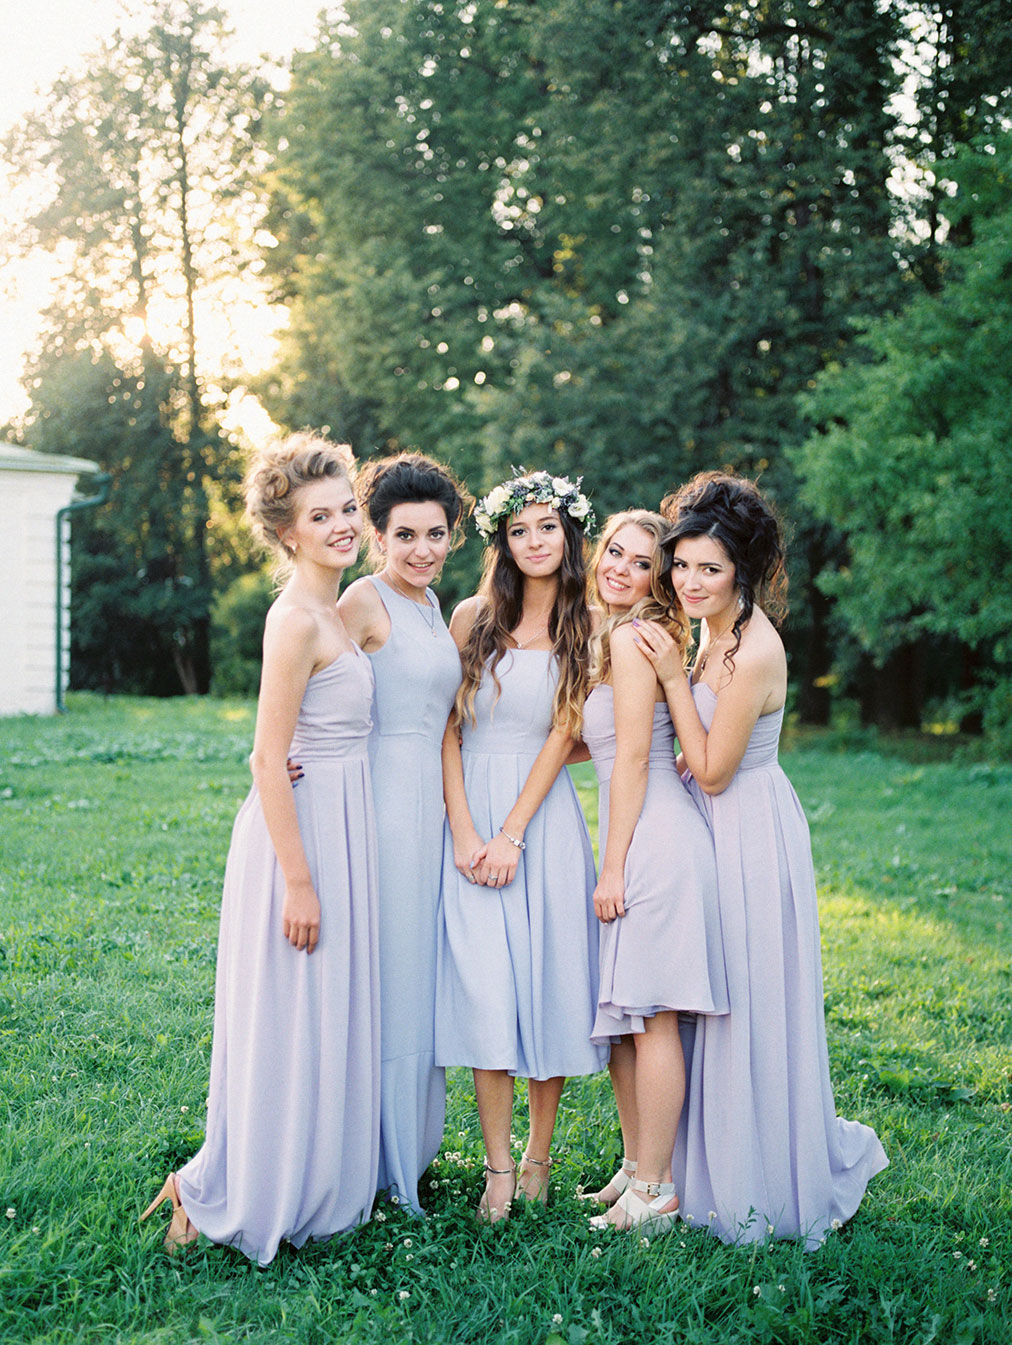 Lavender_wed_by_JuliaKaptelovaPhotography-004